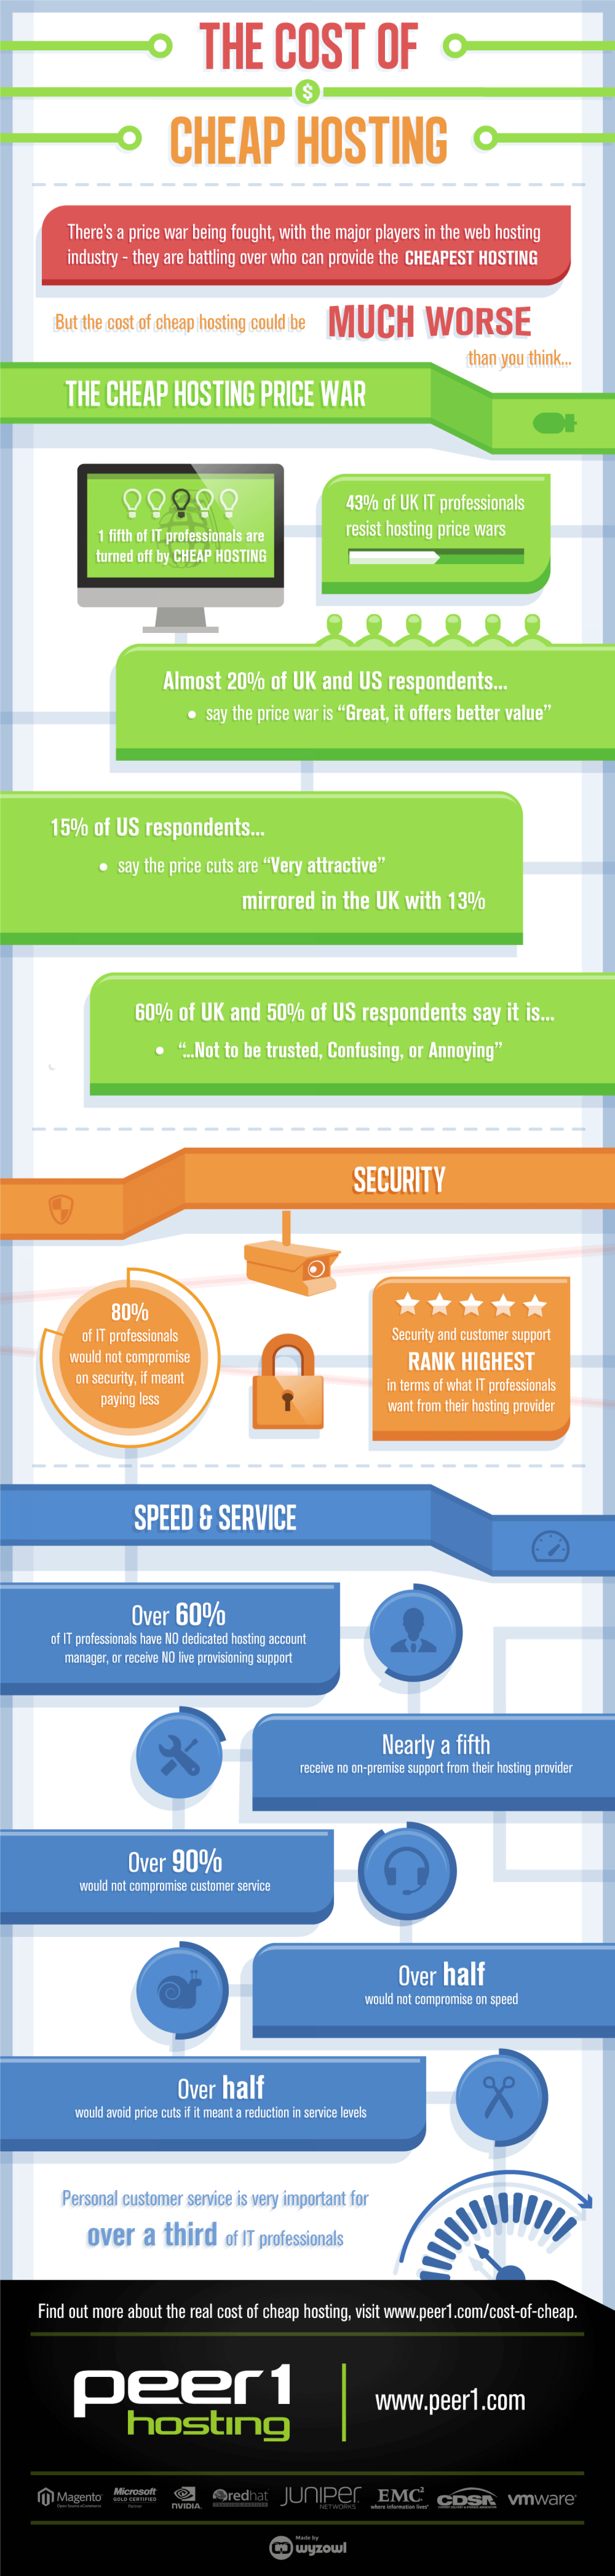 The Cost of Cheap Hosting Infographic